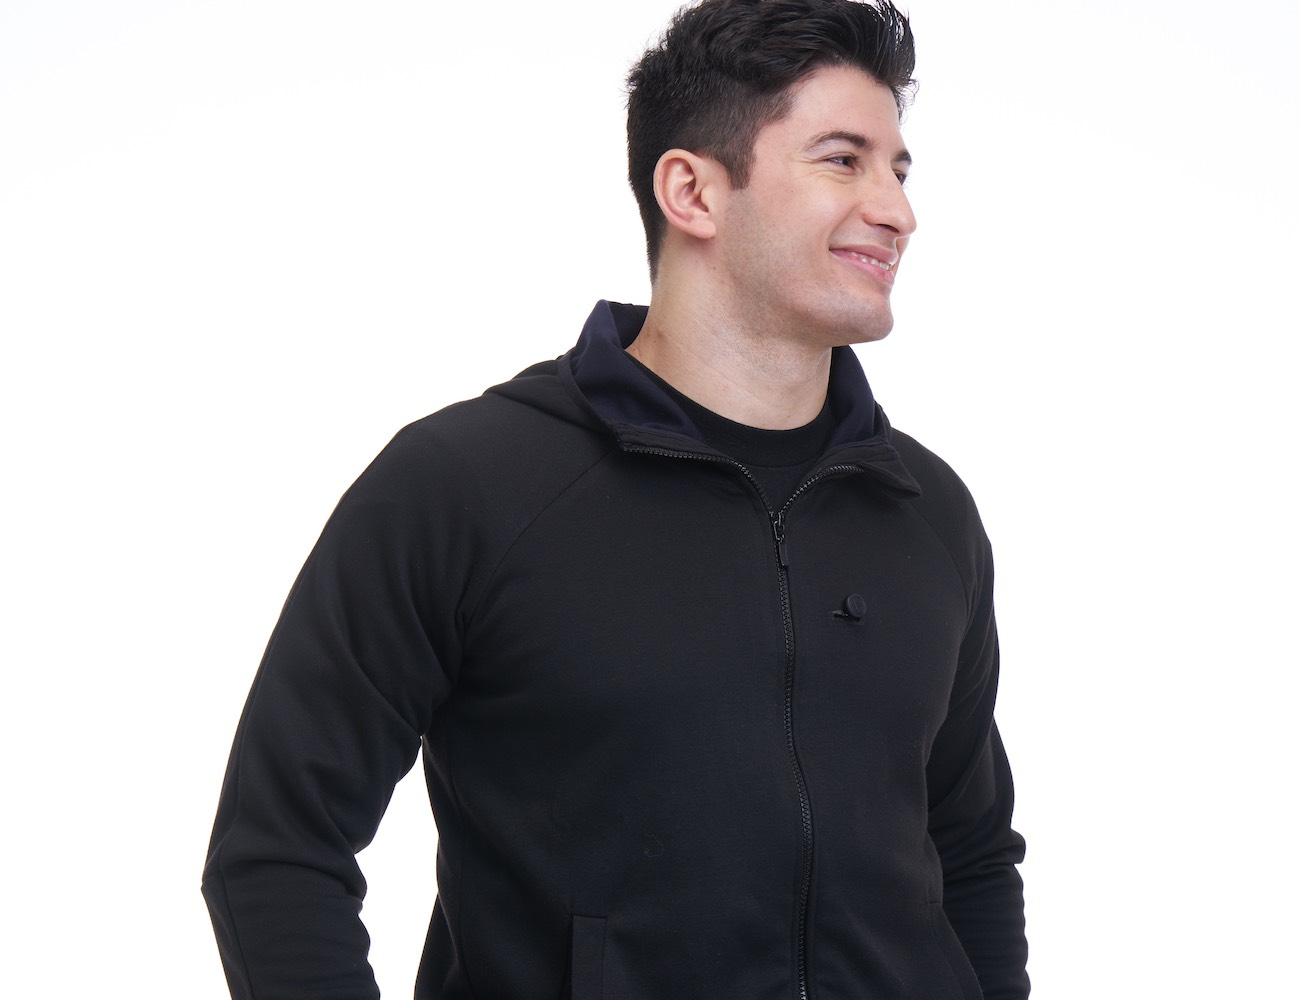 AiraWear – World's First Massage Hoodie